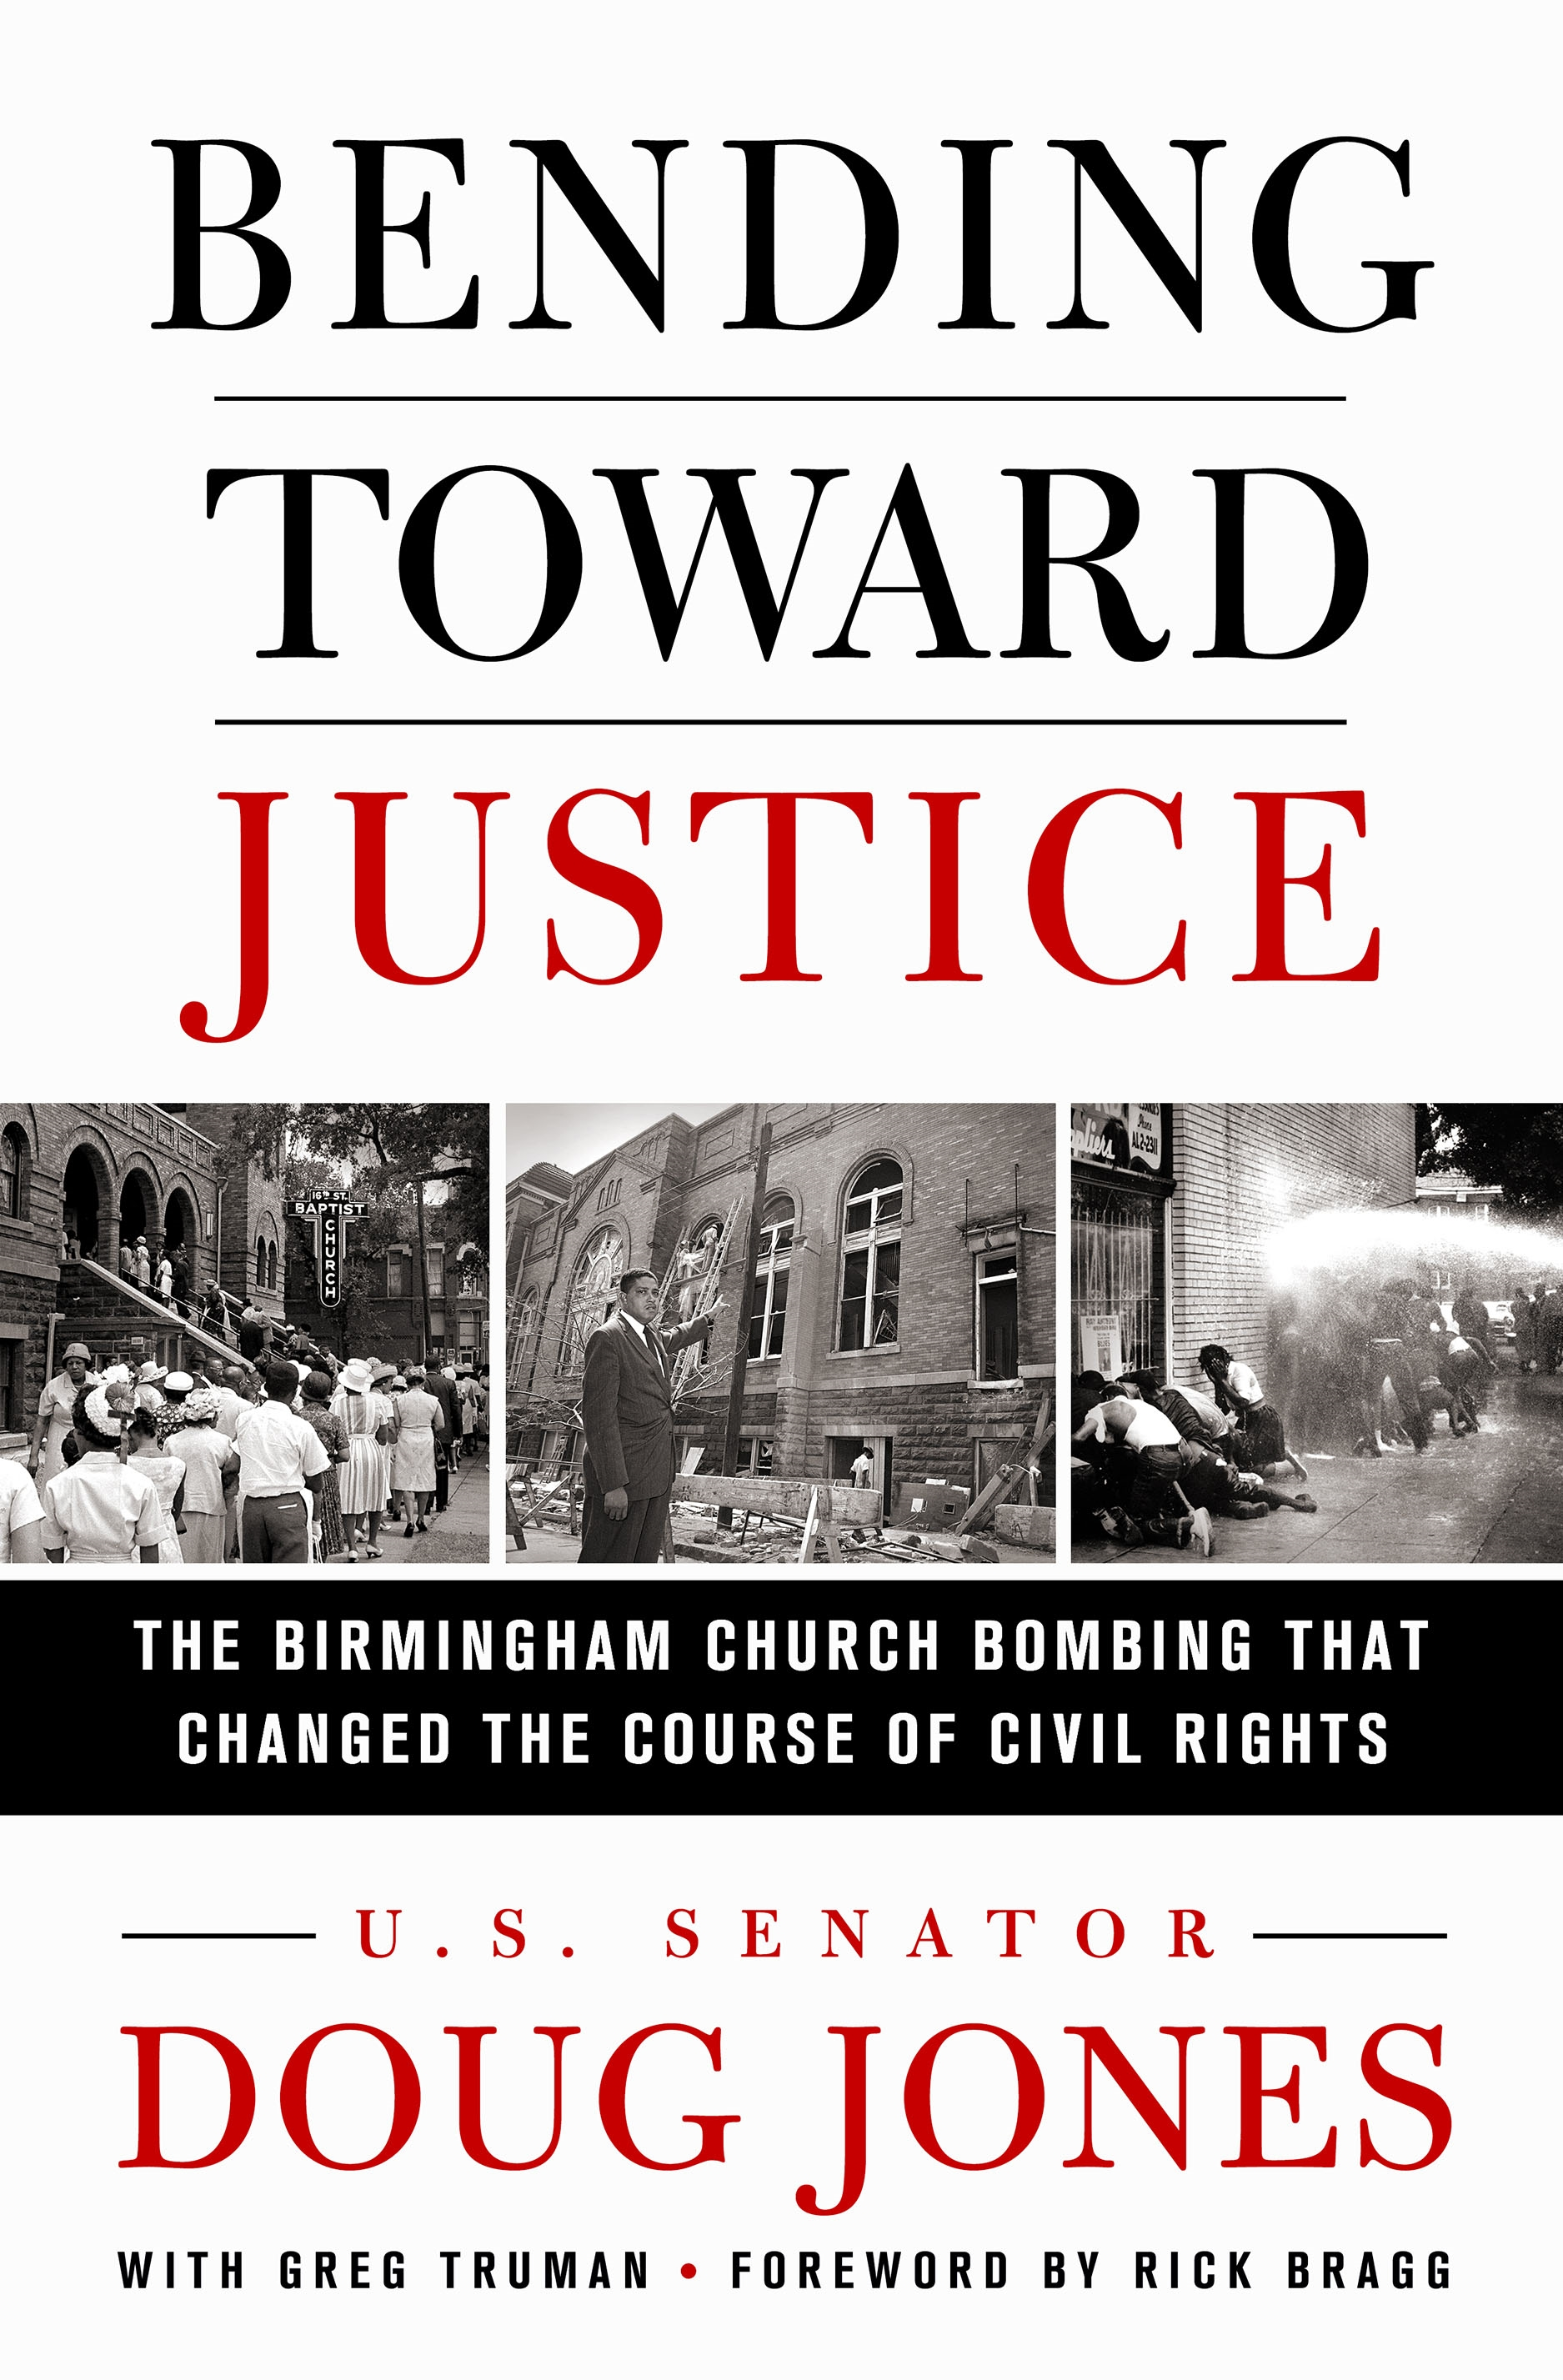 Bending Toward Justice The Birmingham Church Bombing that Changed the Course of Civil Rights